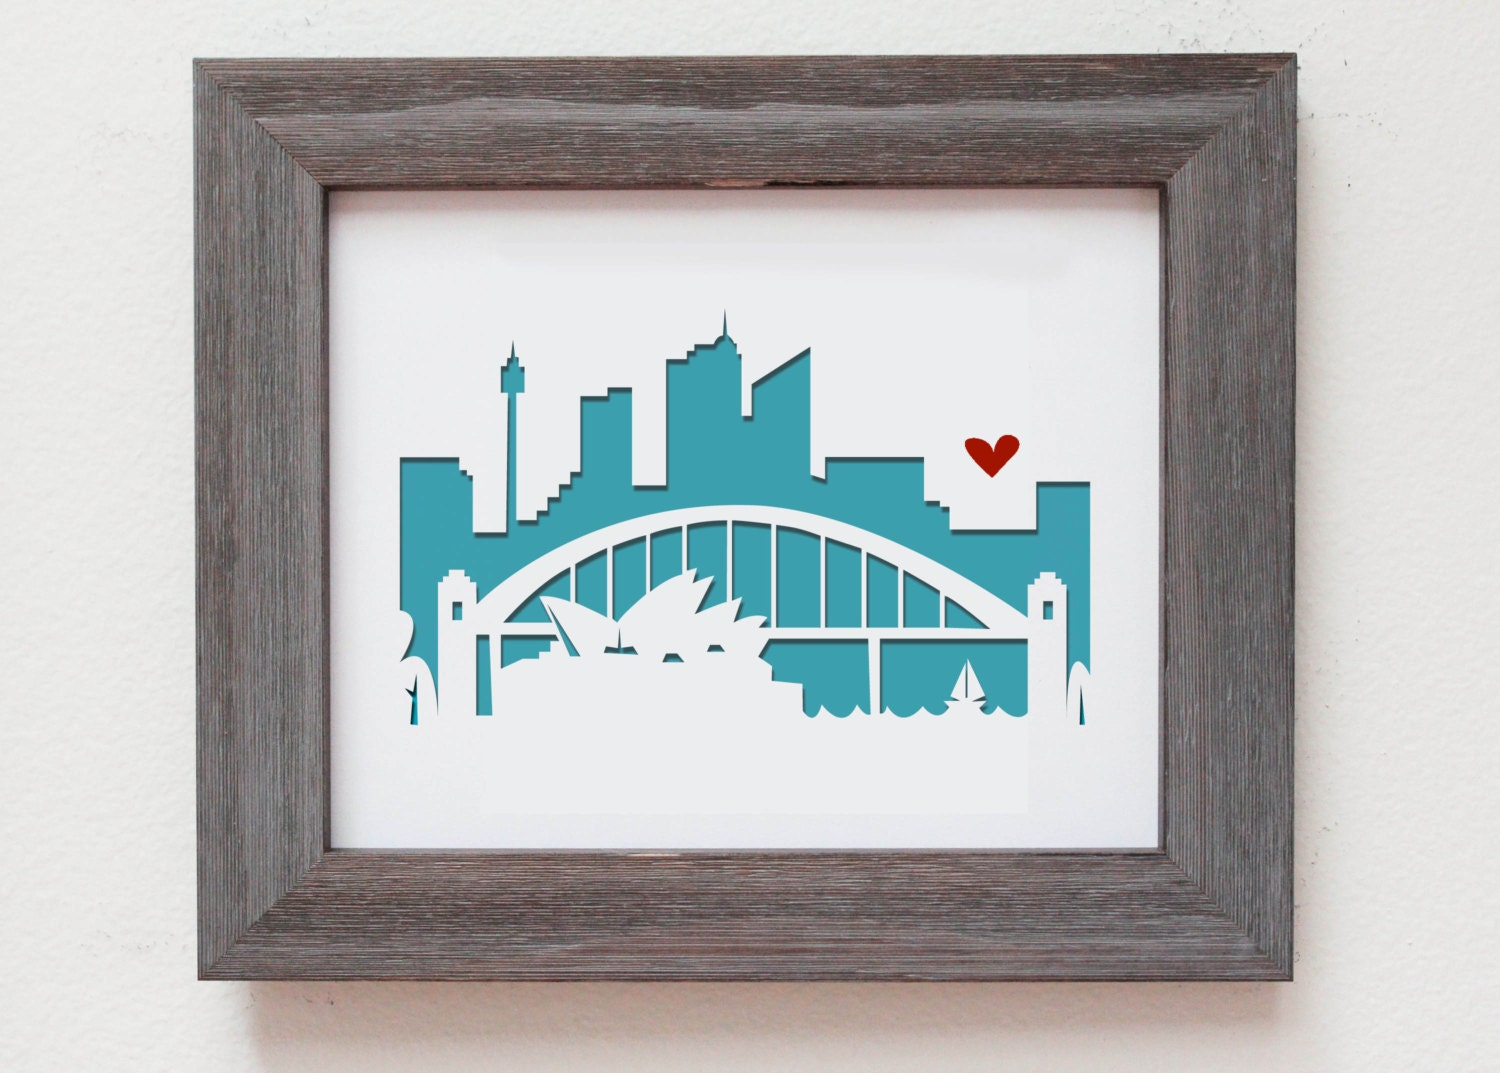 Wedding Gift Ideas Australia: Sydney Australia. Personalized Gift Or Wedding Gift